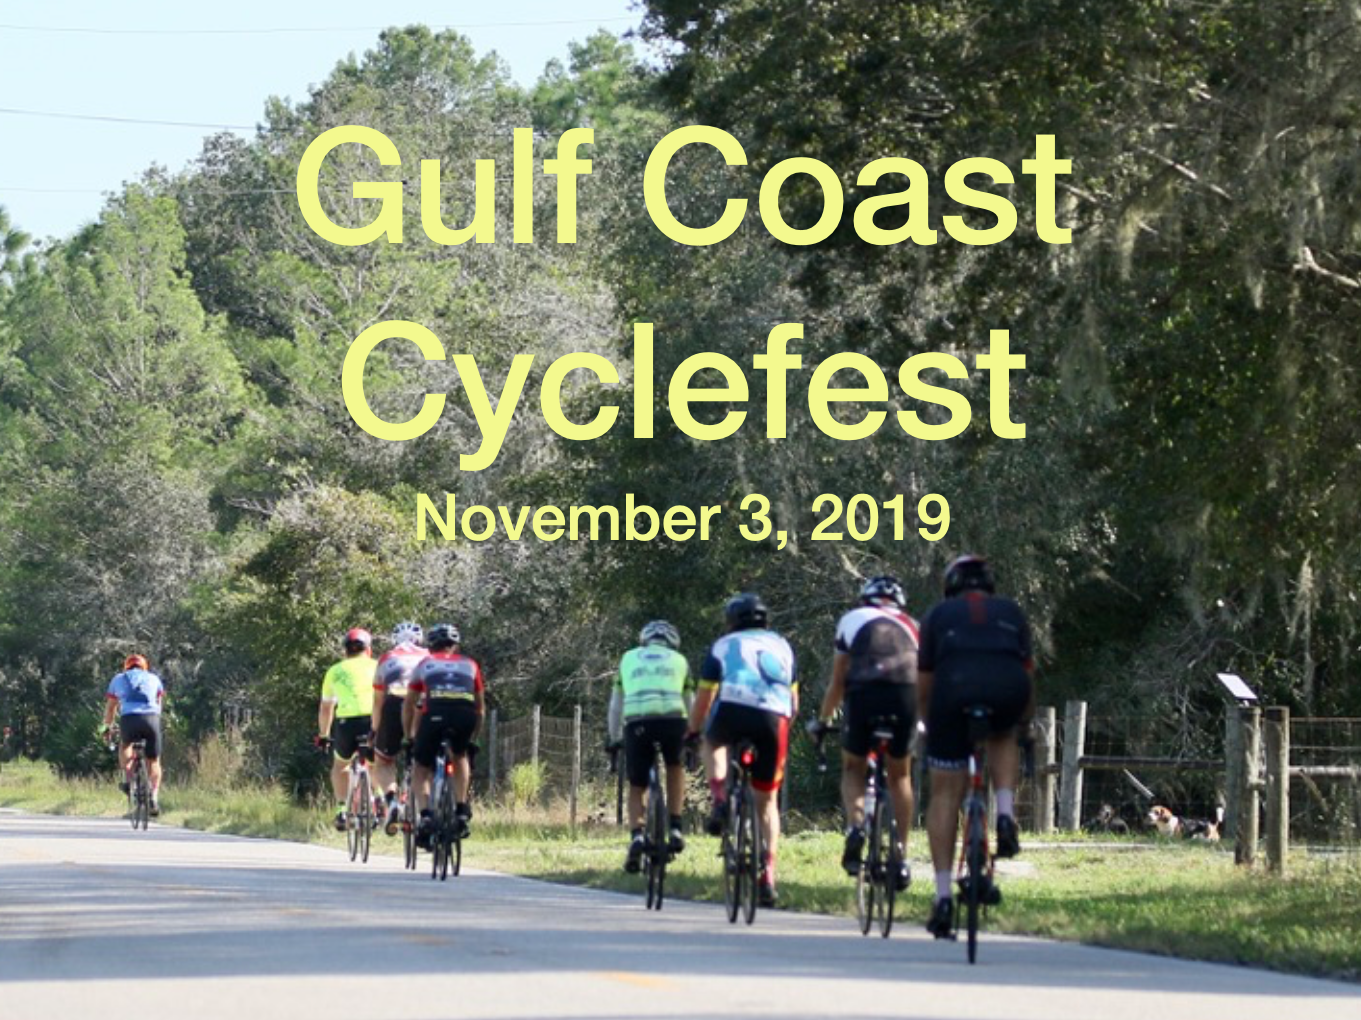 Cyclefest 2019 video